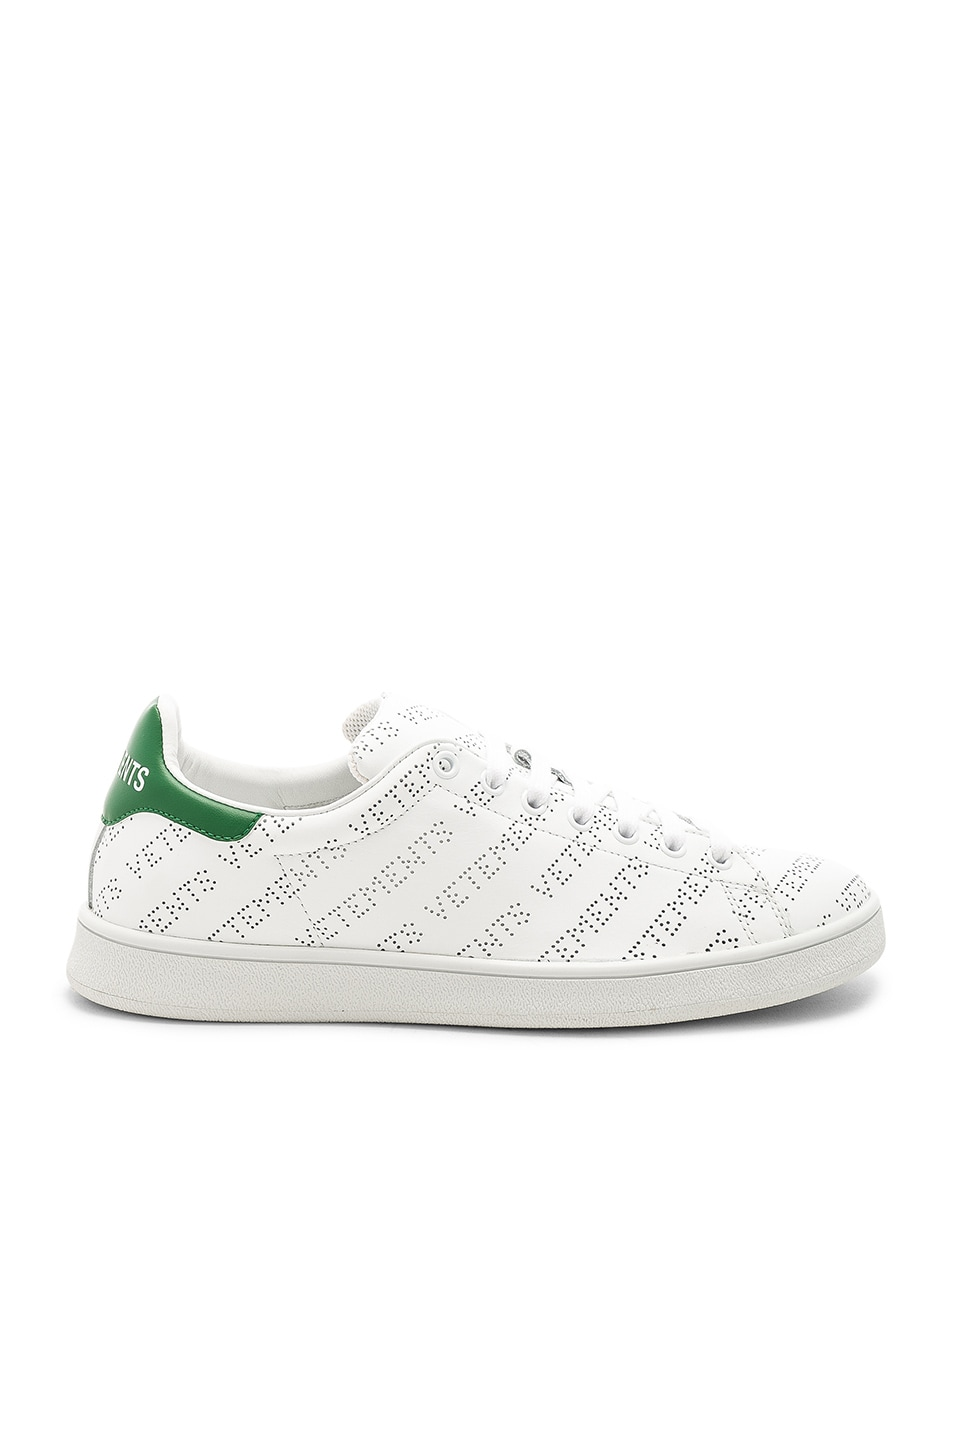 Vetements Perforated Sneakers in . wNVIRd